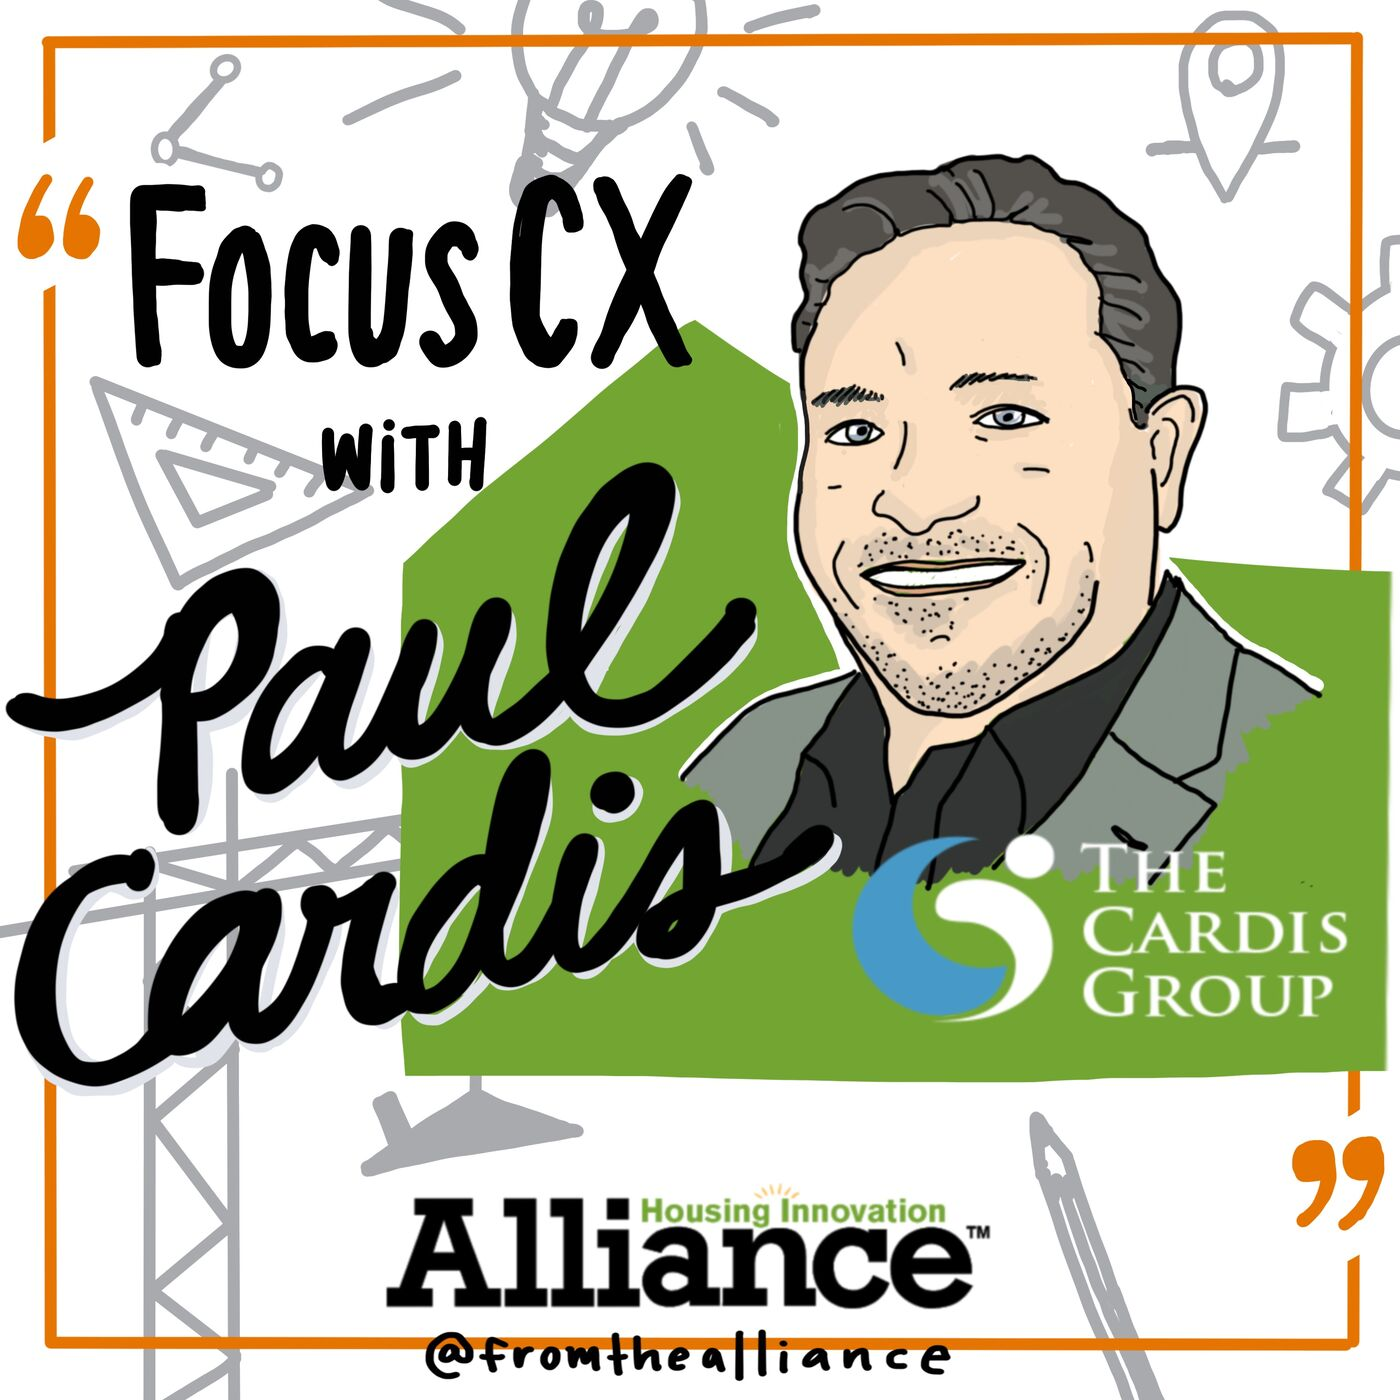 FocusCX with Paul Cardis: ICwhatUC